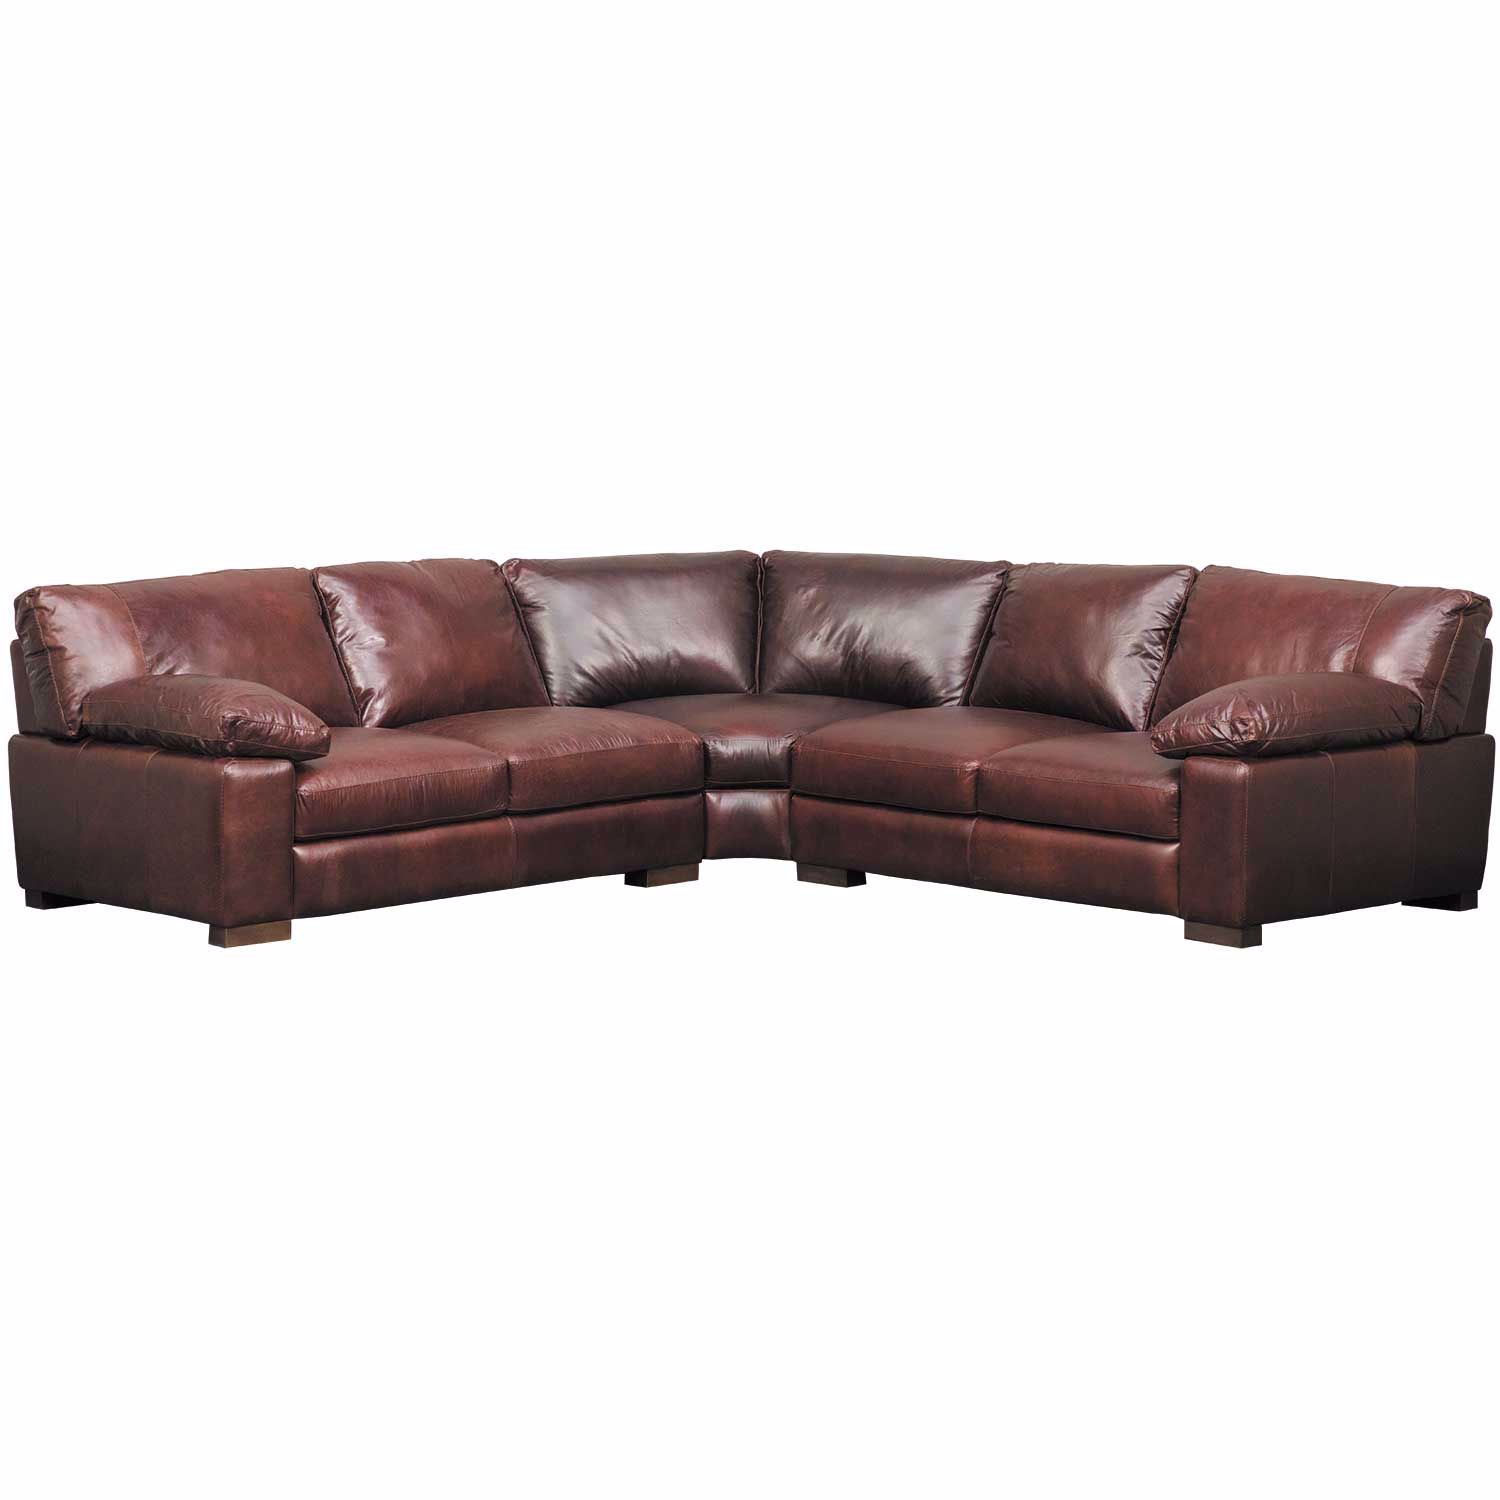 Barcelona All Leather 3 Piece Sectional